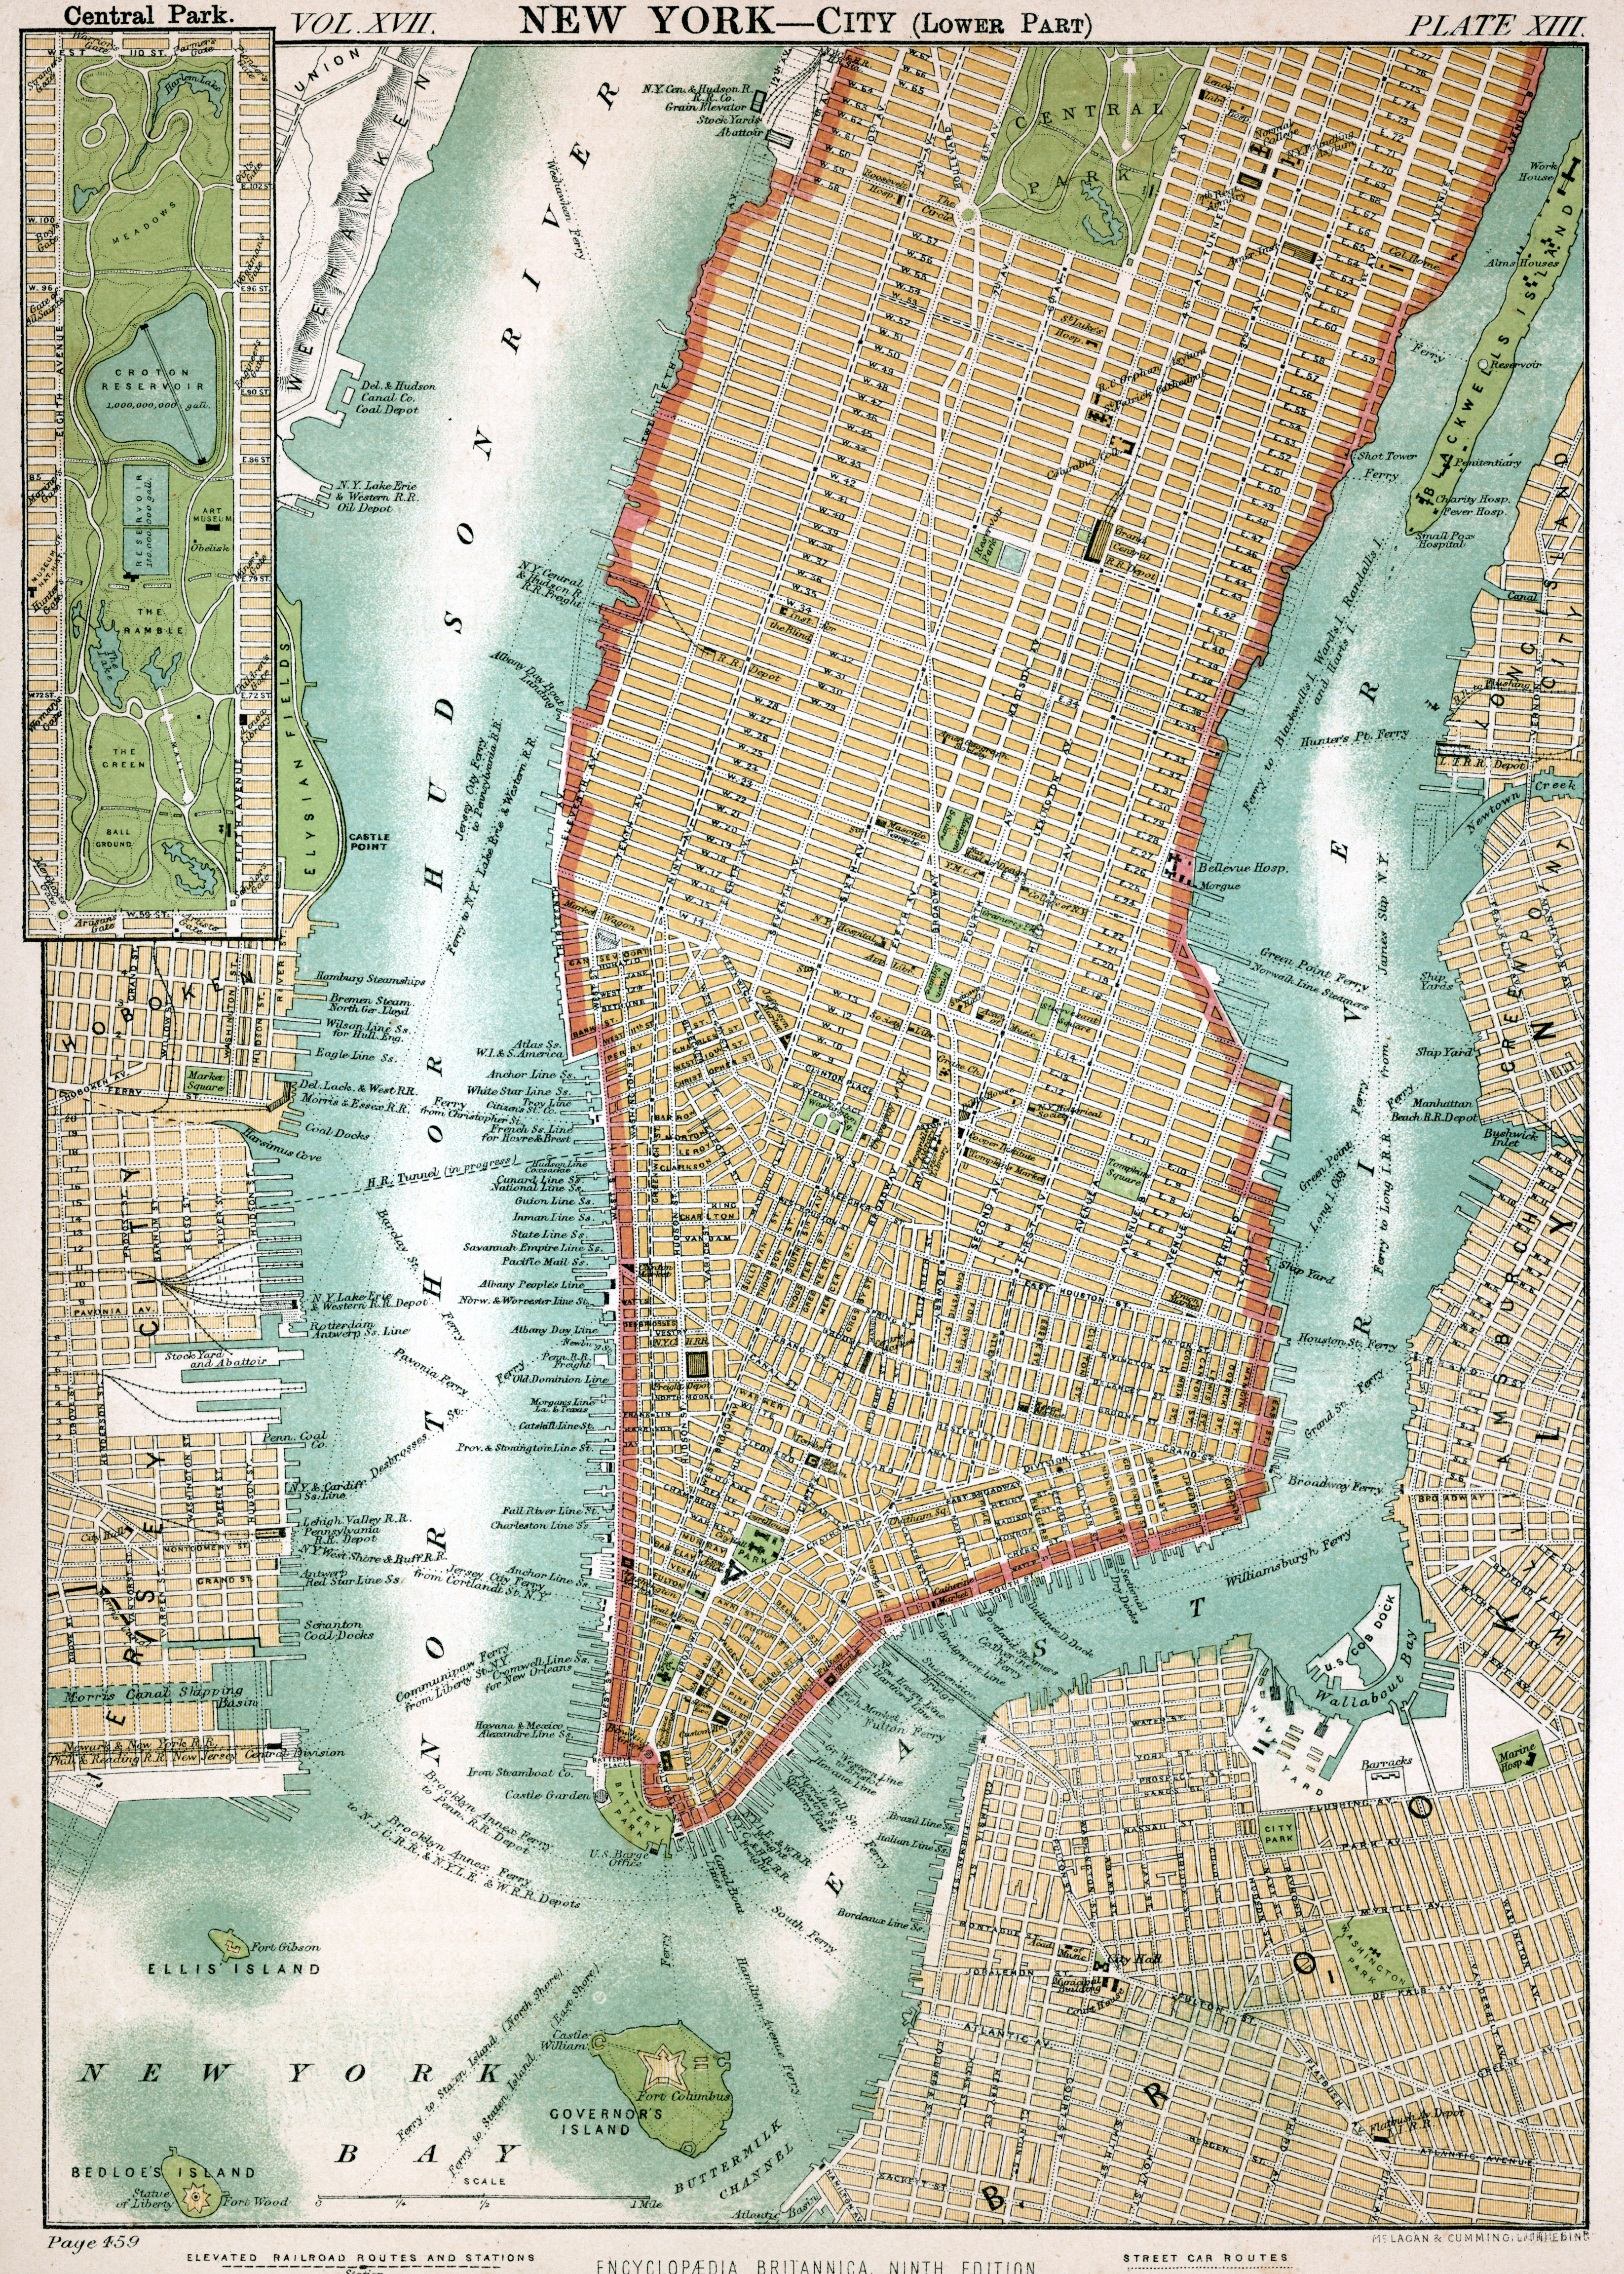 Figures The Wealthiest ZIP Codes In The US Revealed With  Of The - Nyc zip code map pdf